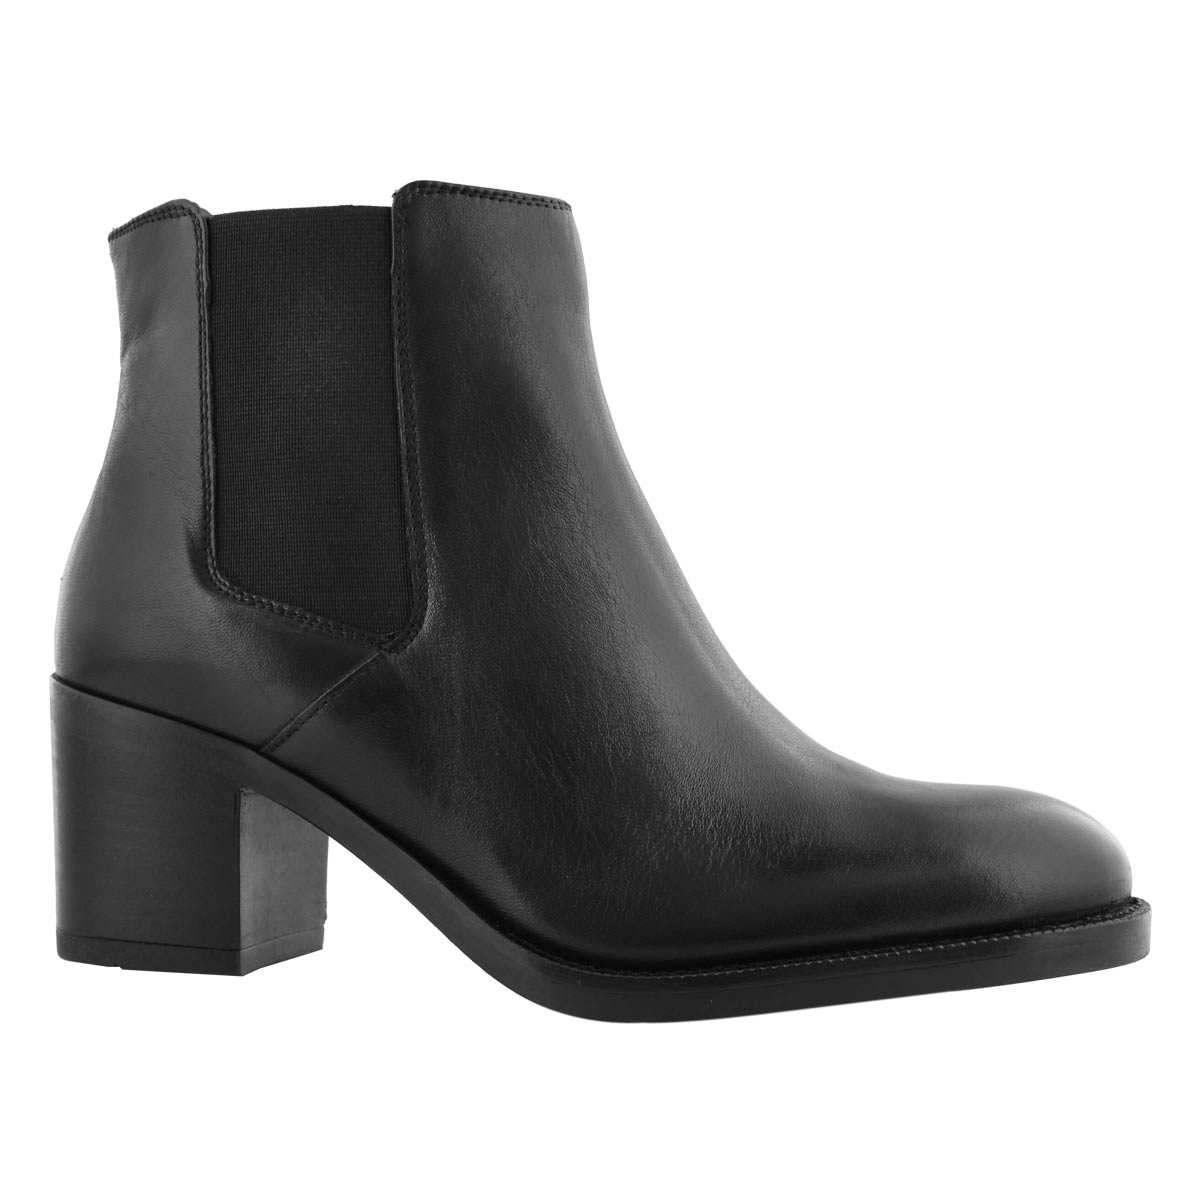 Lds Mascarpone Bay blk dress ankle boot